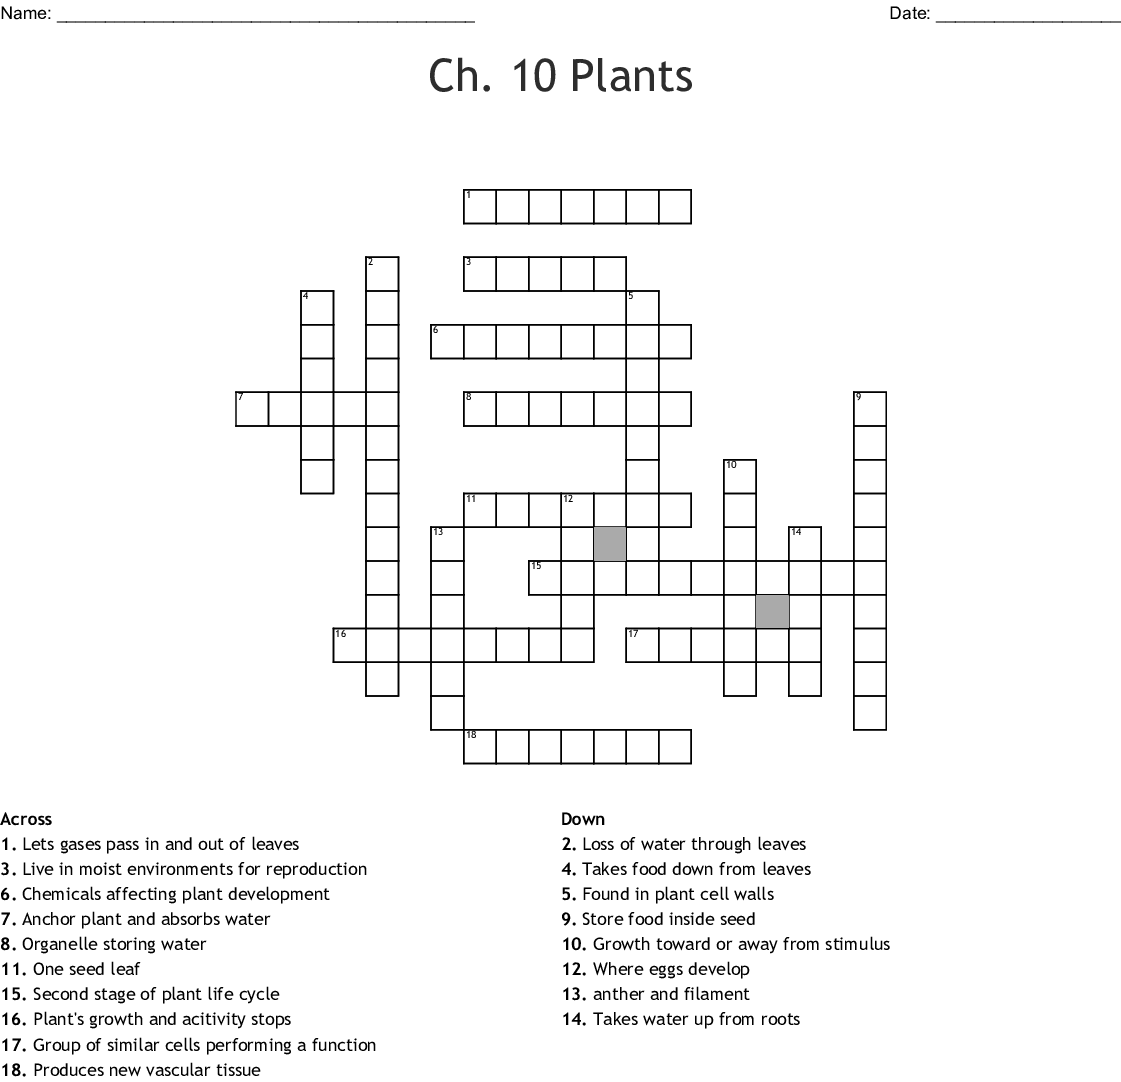 Ch 10 Plants Crossword